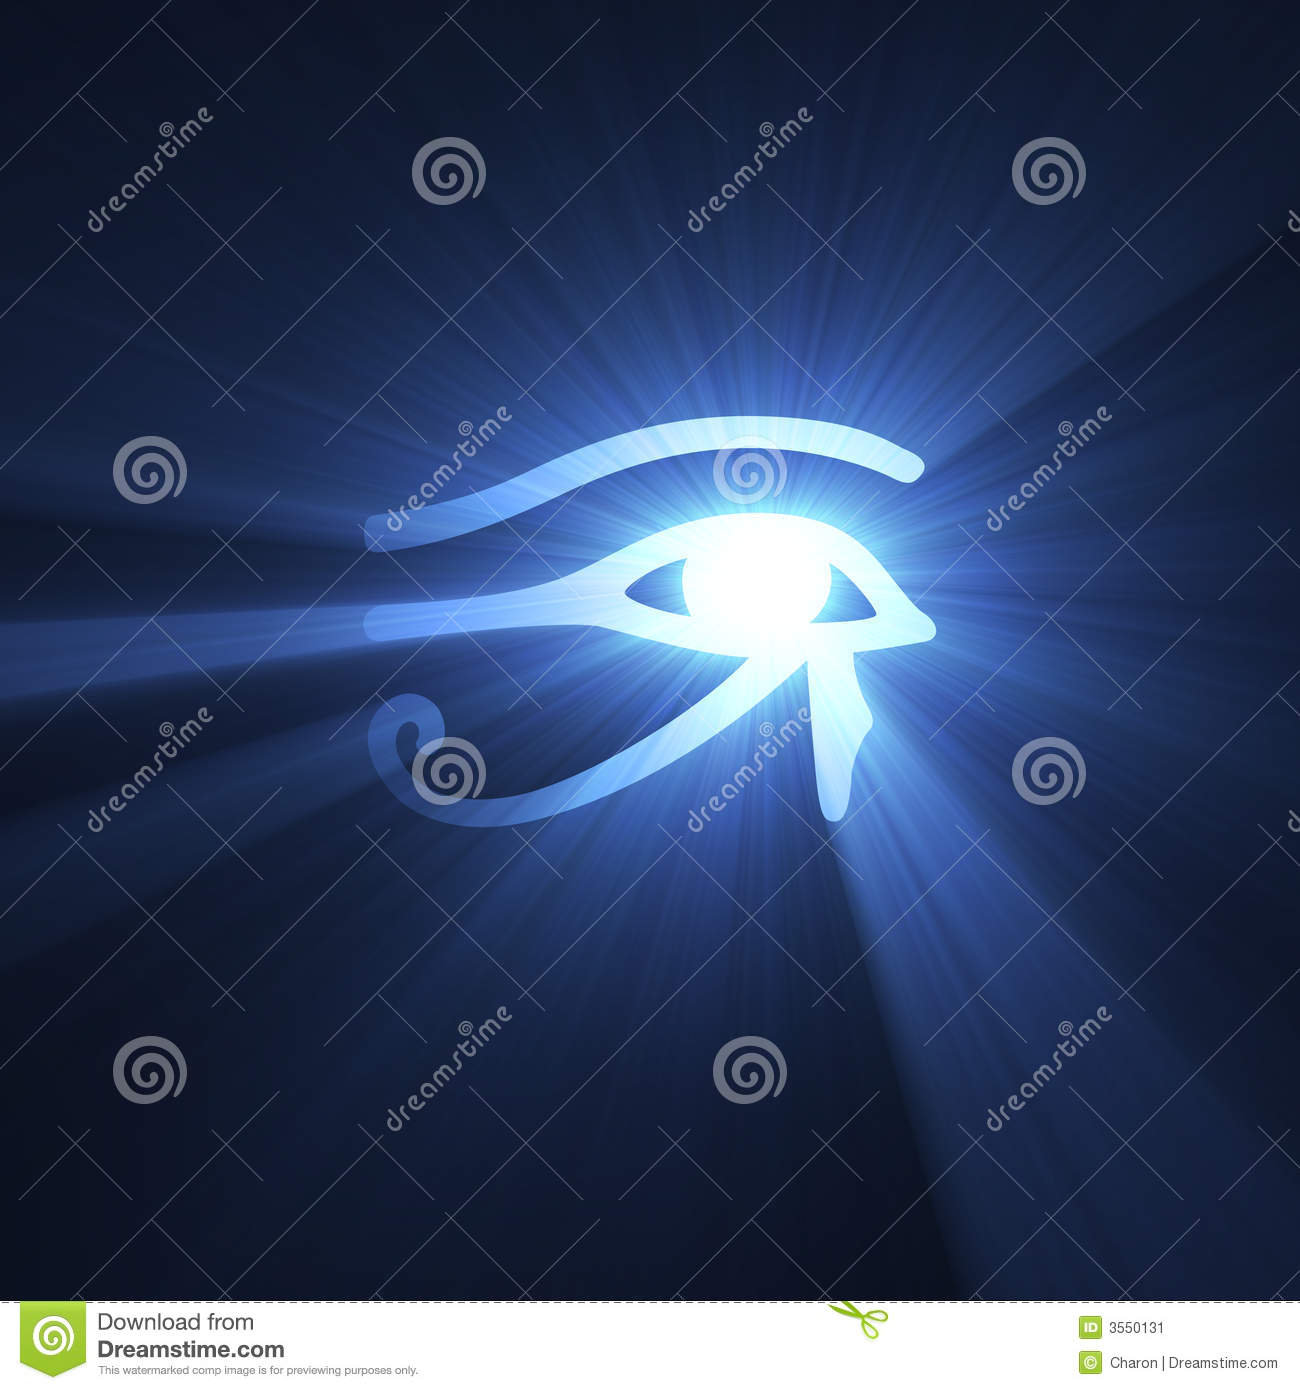 eye of horus wallpaper